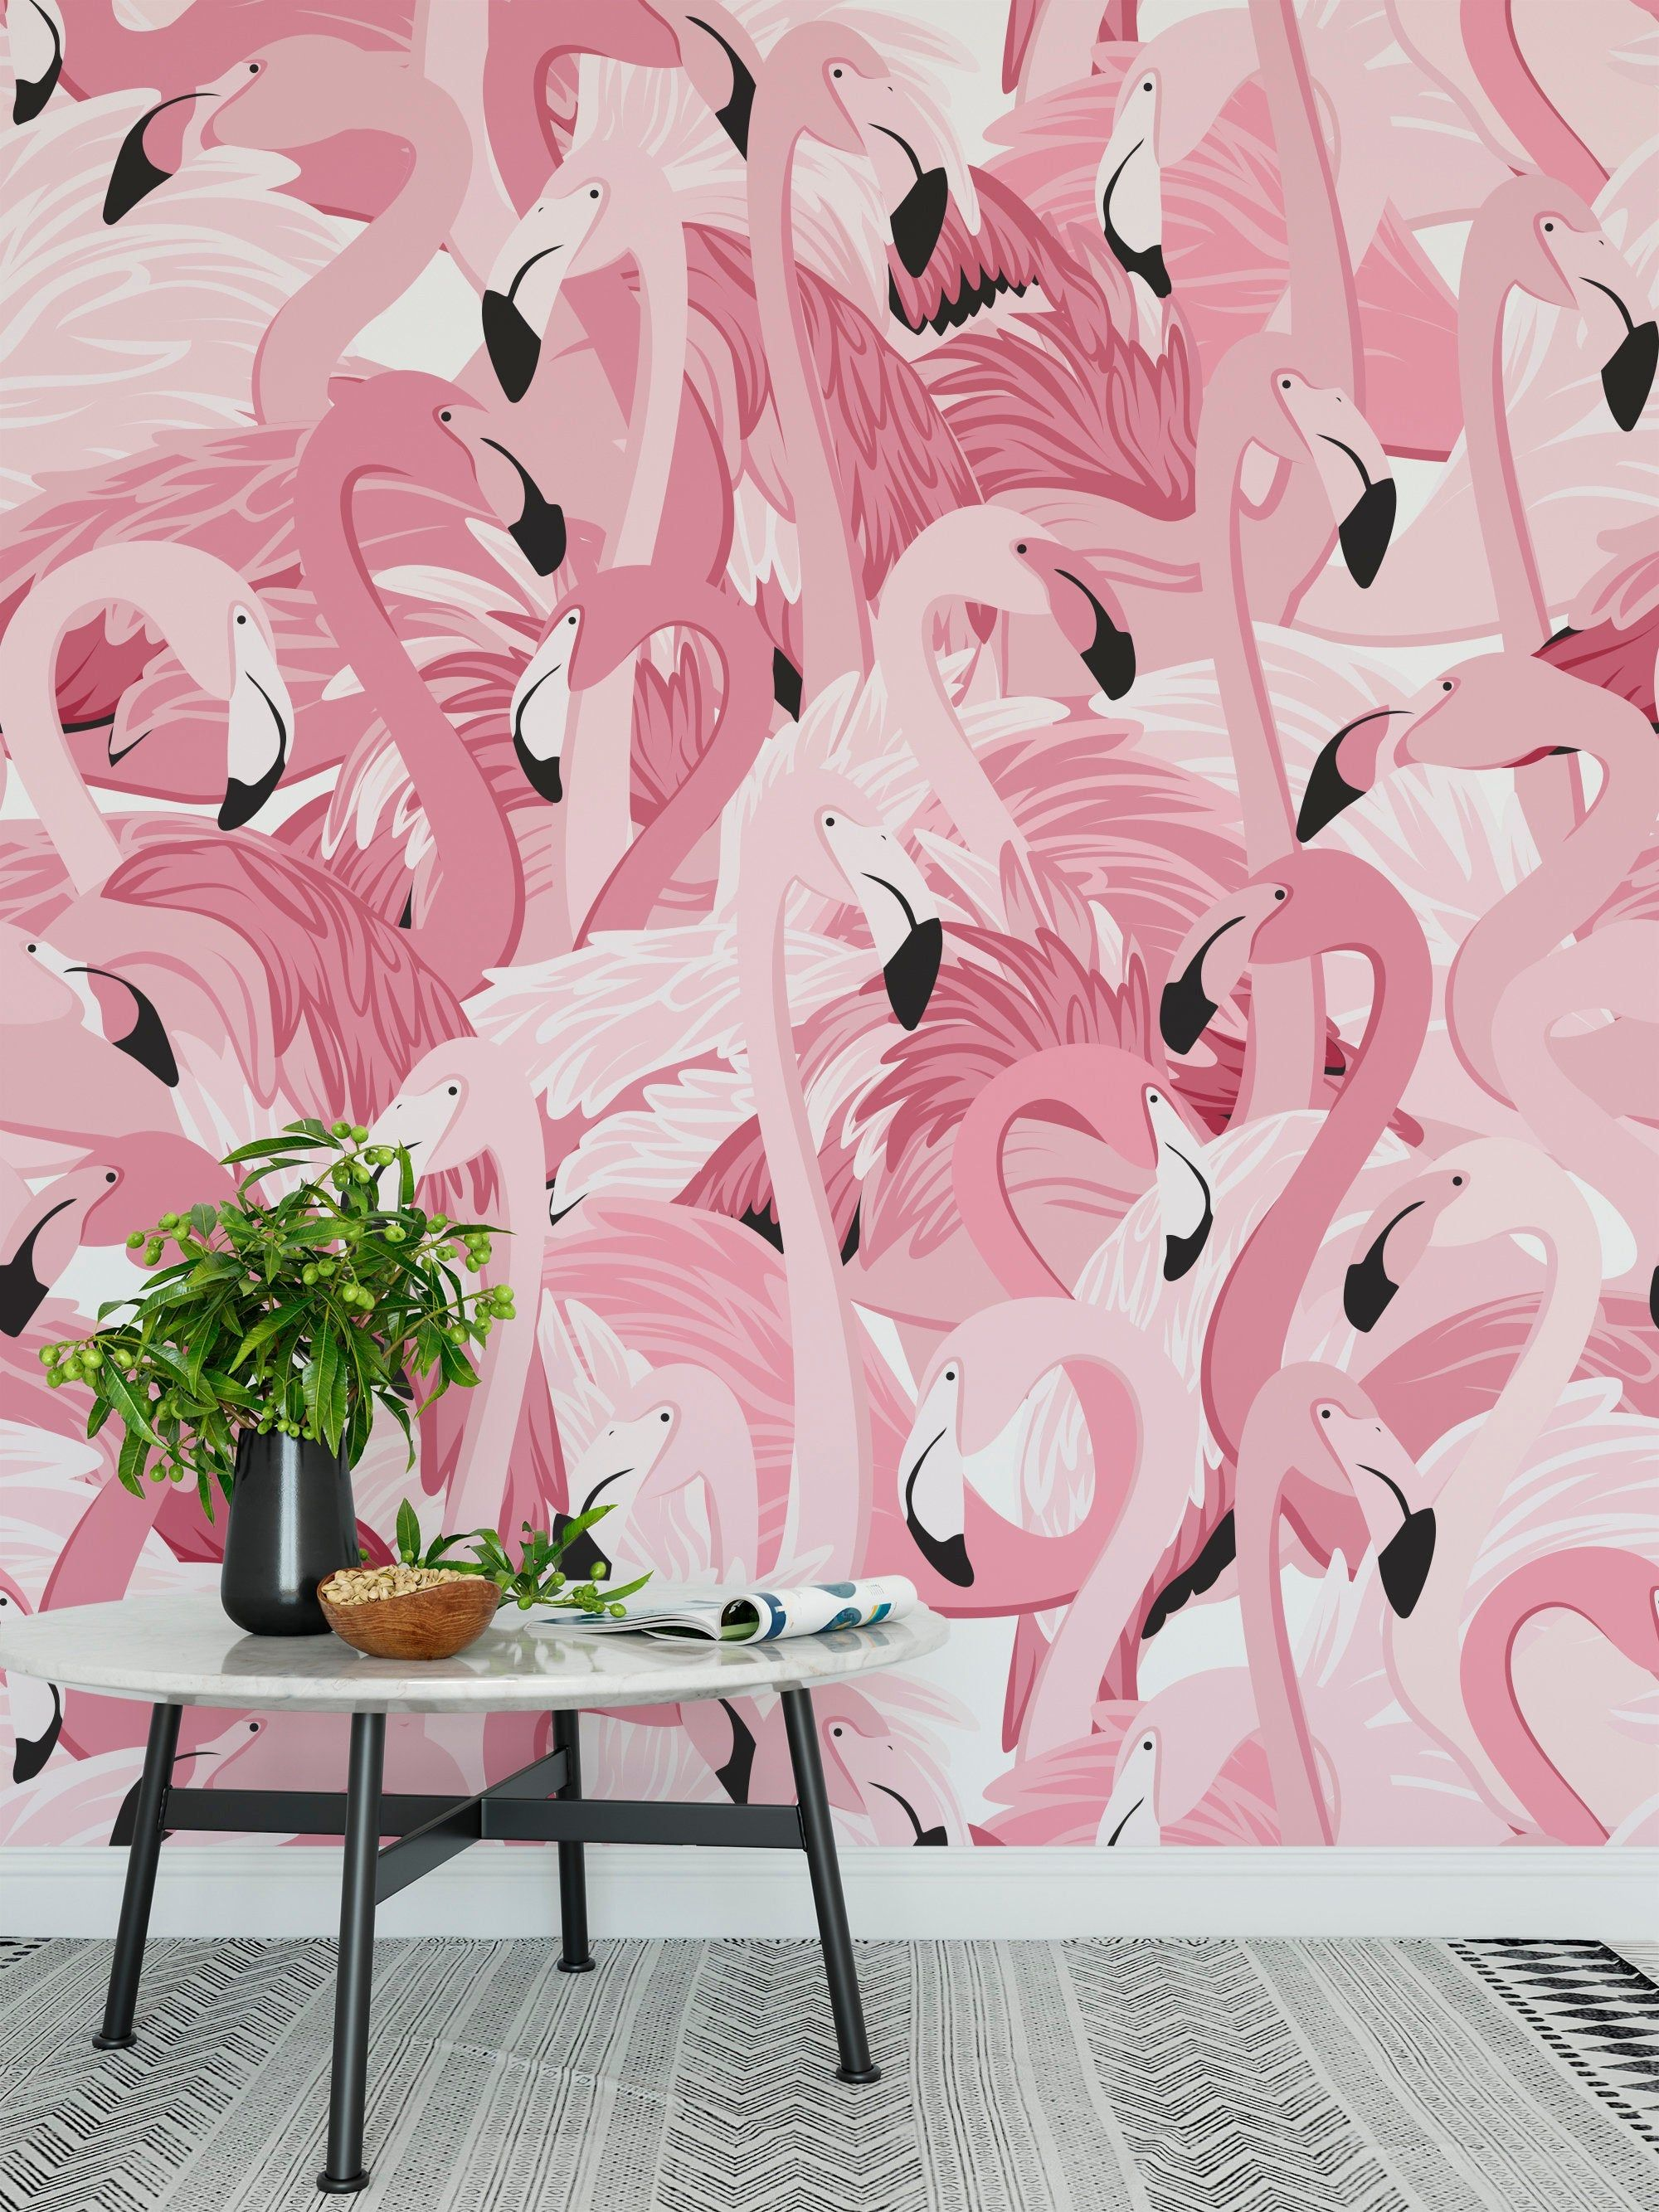 Removable Peel And Stick Wallpaper Pink Flamingo Wallpaper Peel And Stick Wallpaper Removable Wallpaper Peel Off Wallpaper